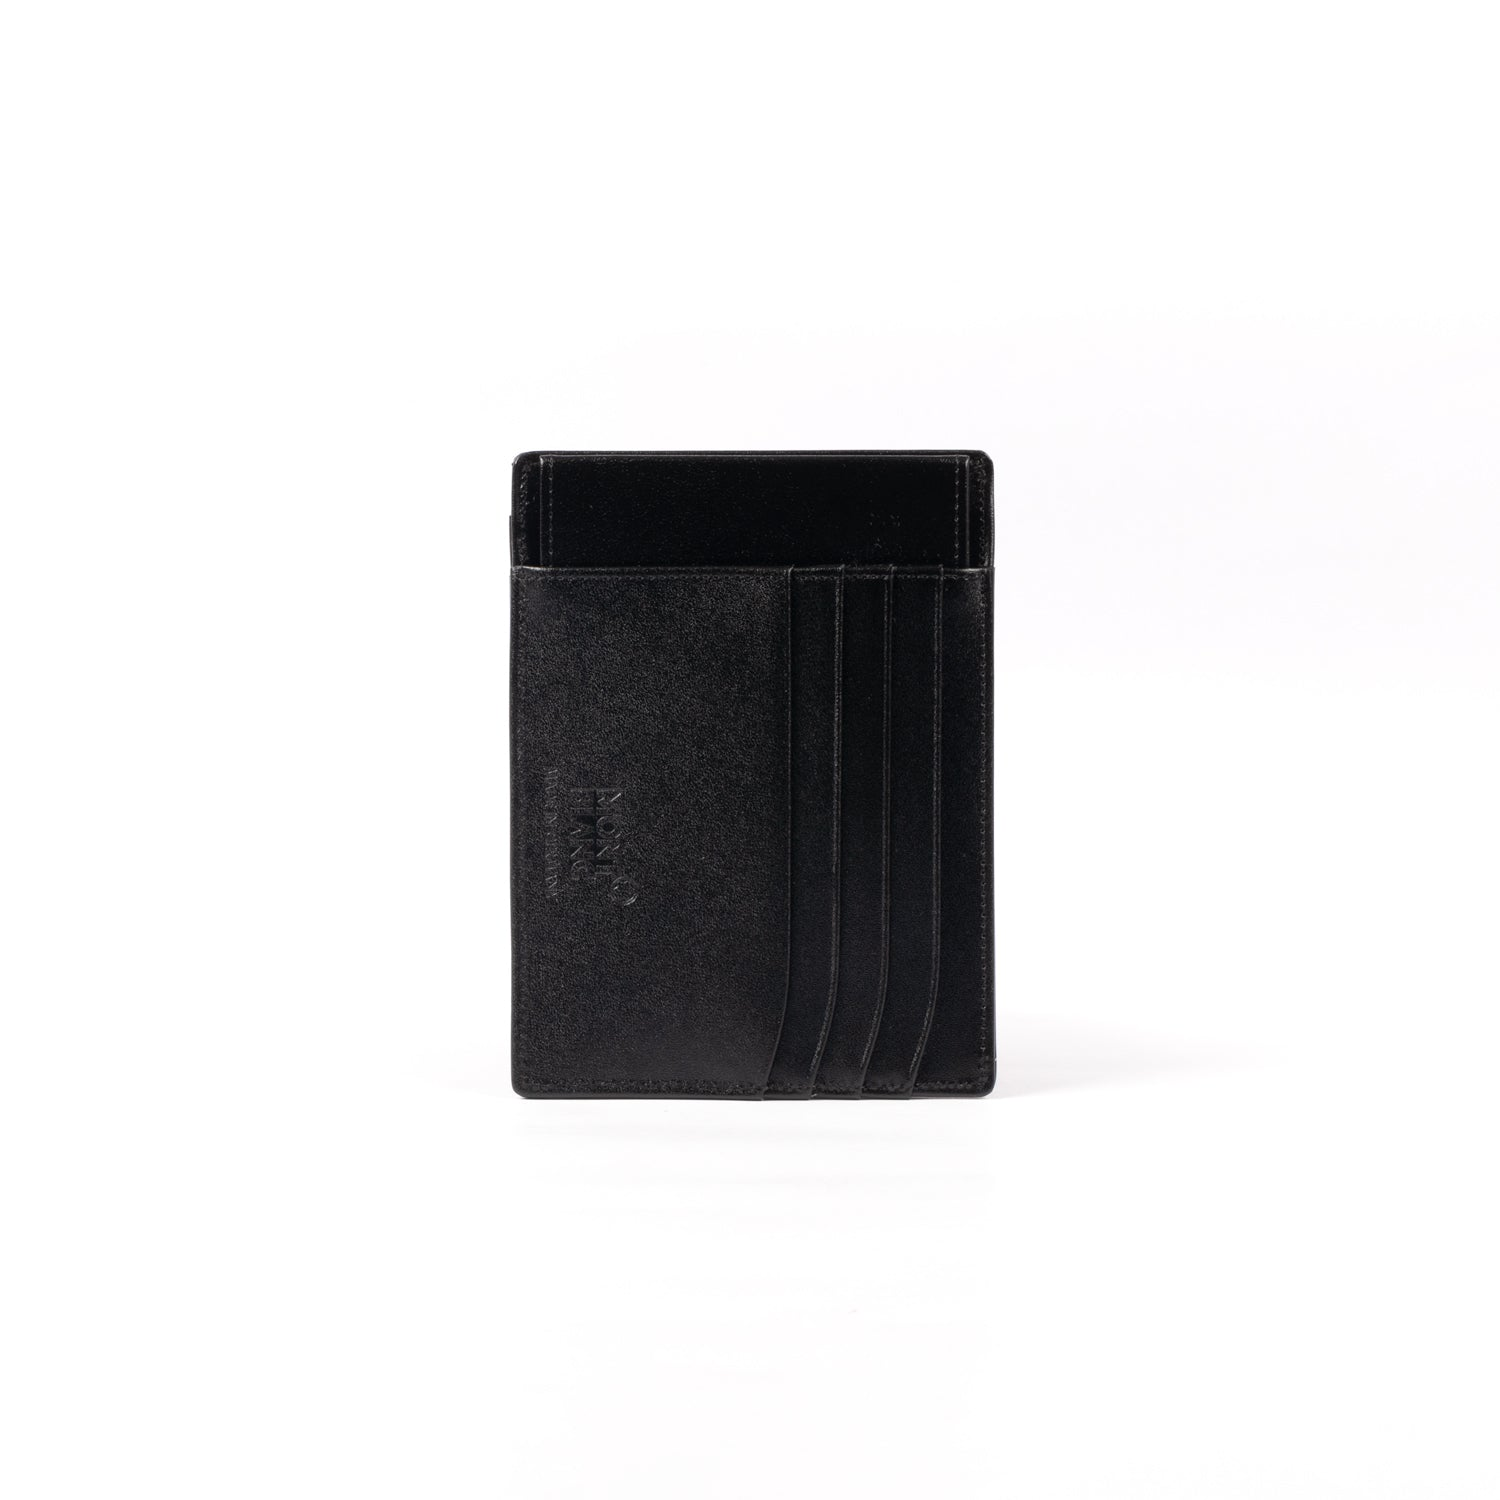 Mont Blanc Meisterstuck Document & Cc Holder | Shop MONT BLANC Online India